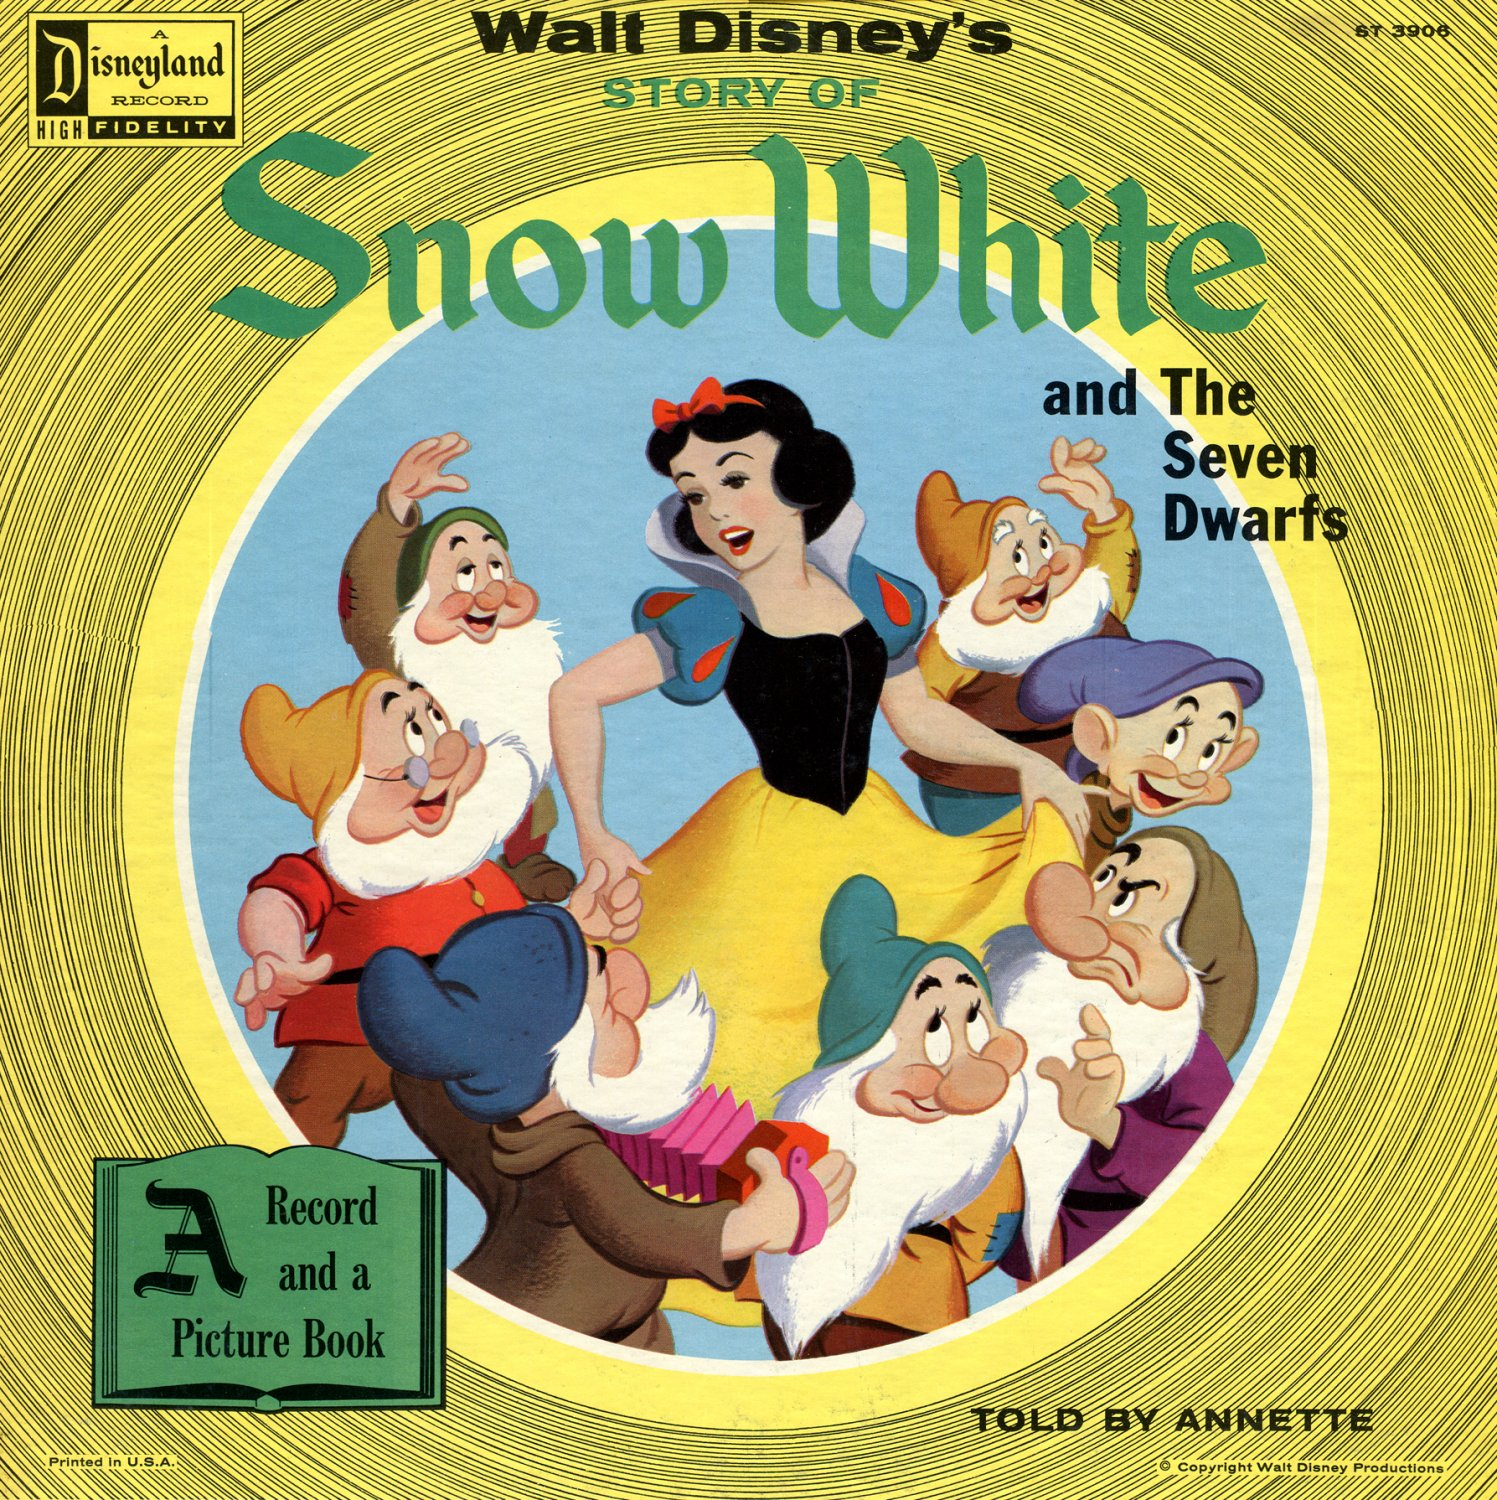 Snow white and the seven dwarfs story  hentia pic